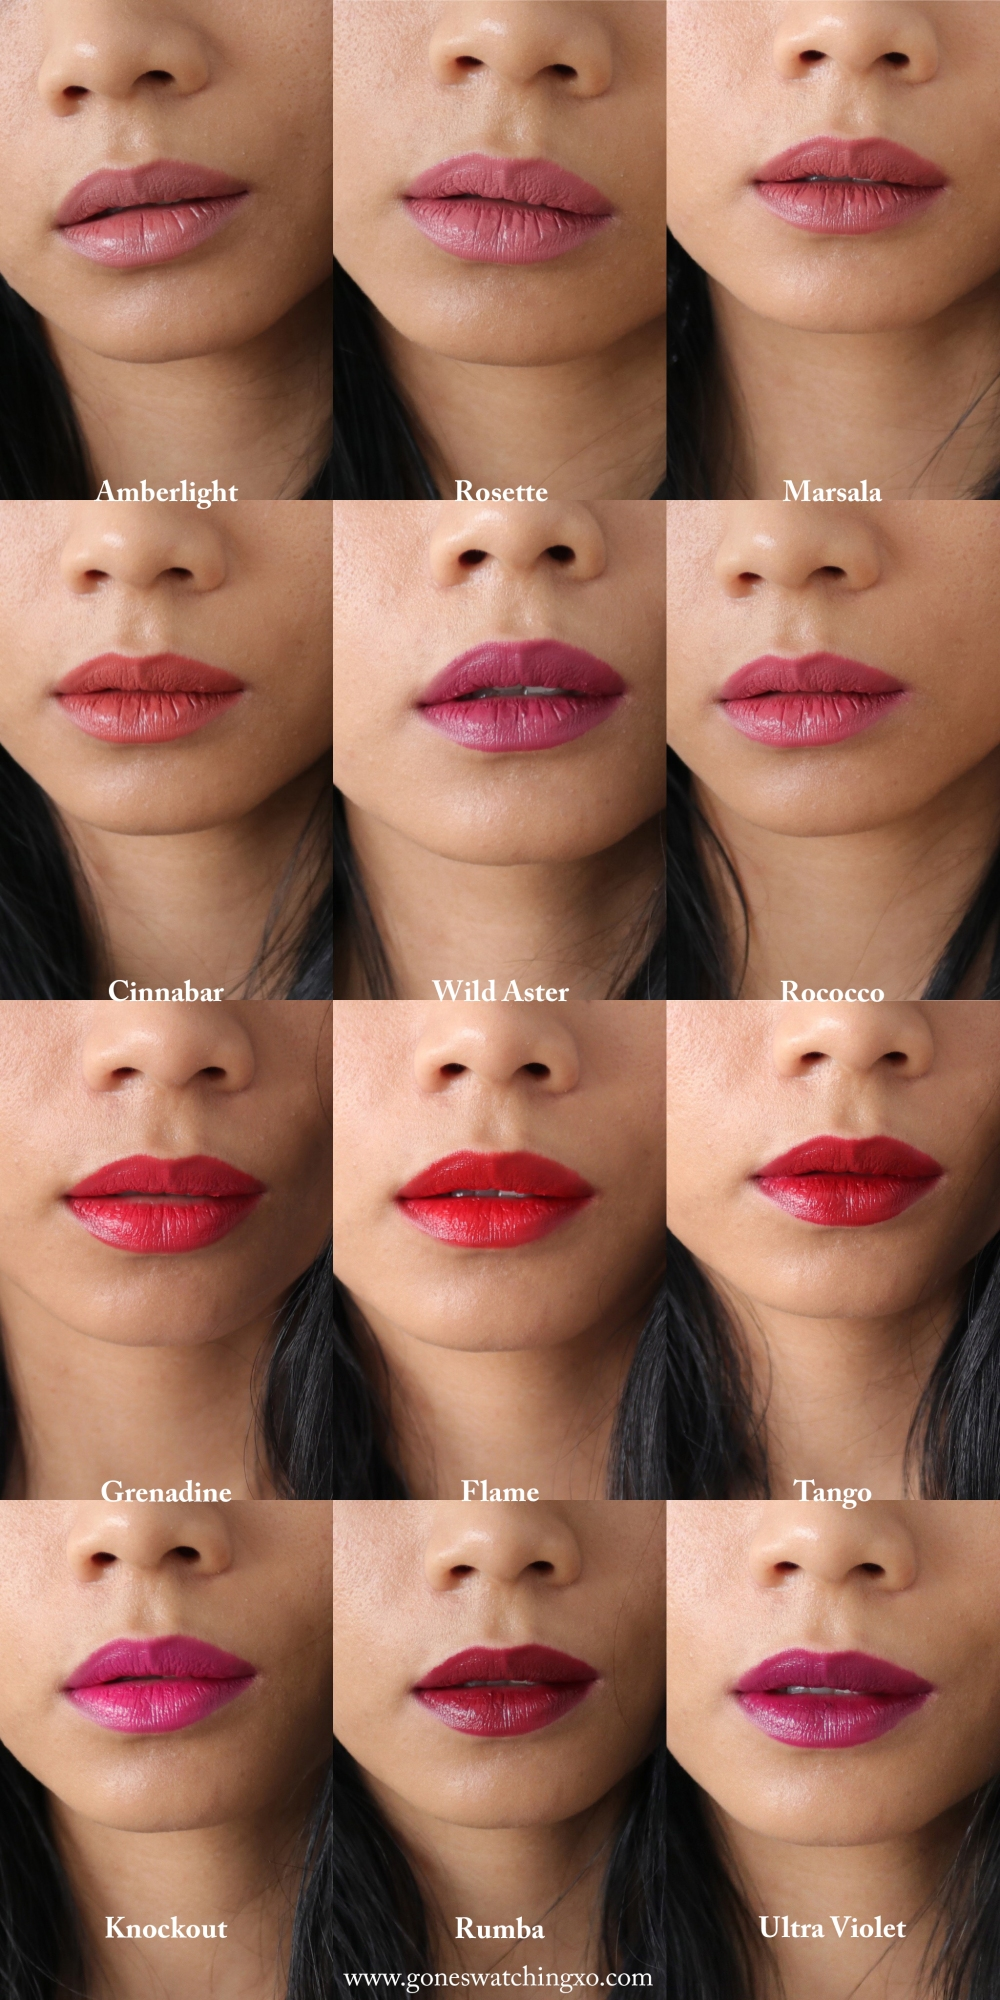 Ilia Beauty Lipstick Swatches. Amberlight, Rosette, Marsala, Cinnabar, Wild Aster, Rococco, Grenadine, Flame, Tango, Knockout, Rumba & Ultra Violet. Blogger Gone Swatching xo